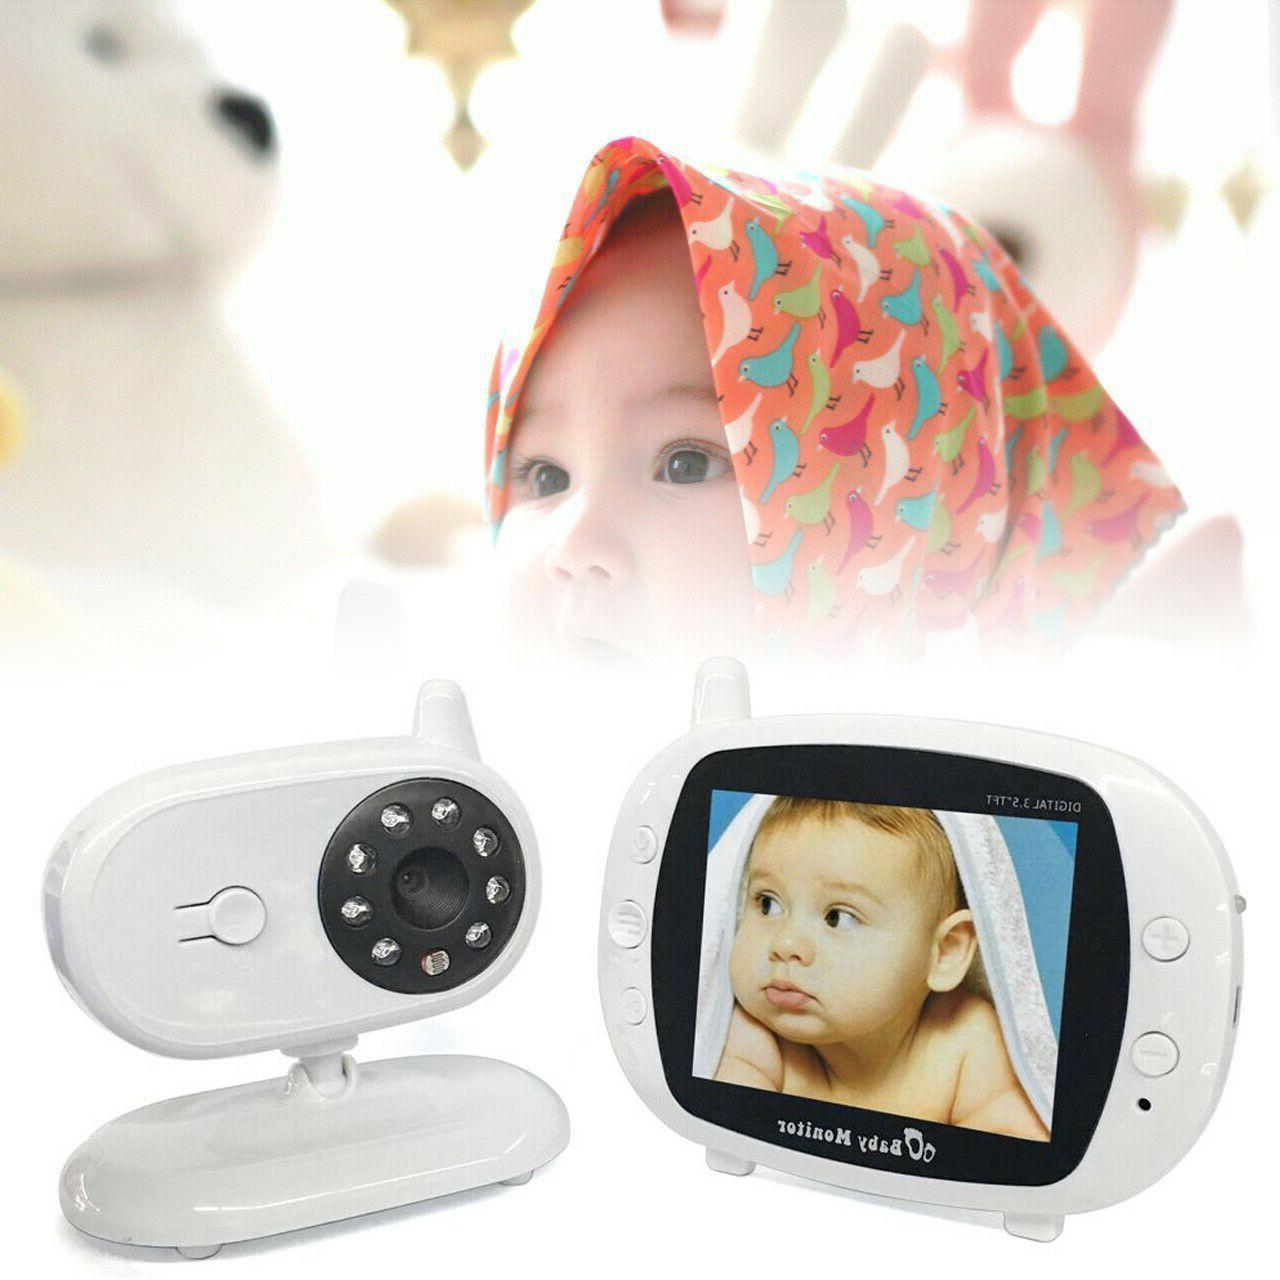 2 way audio video play baby monitor